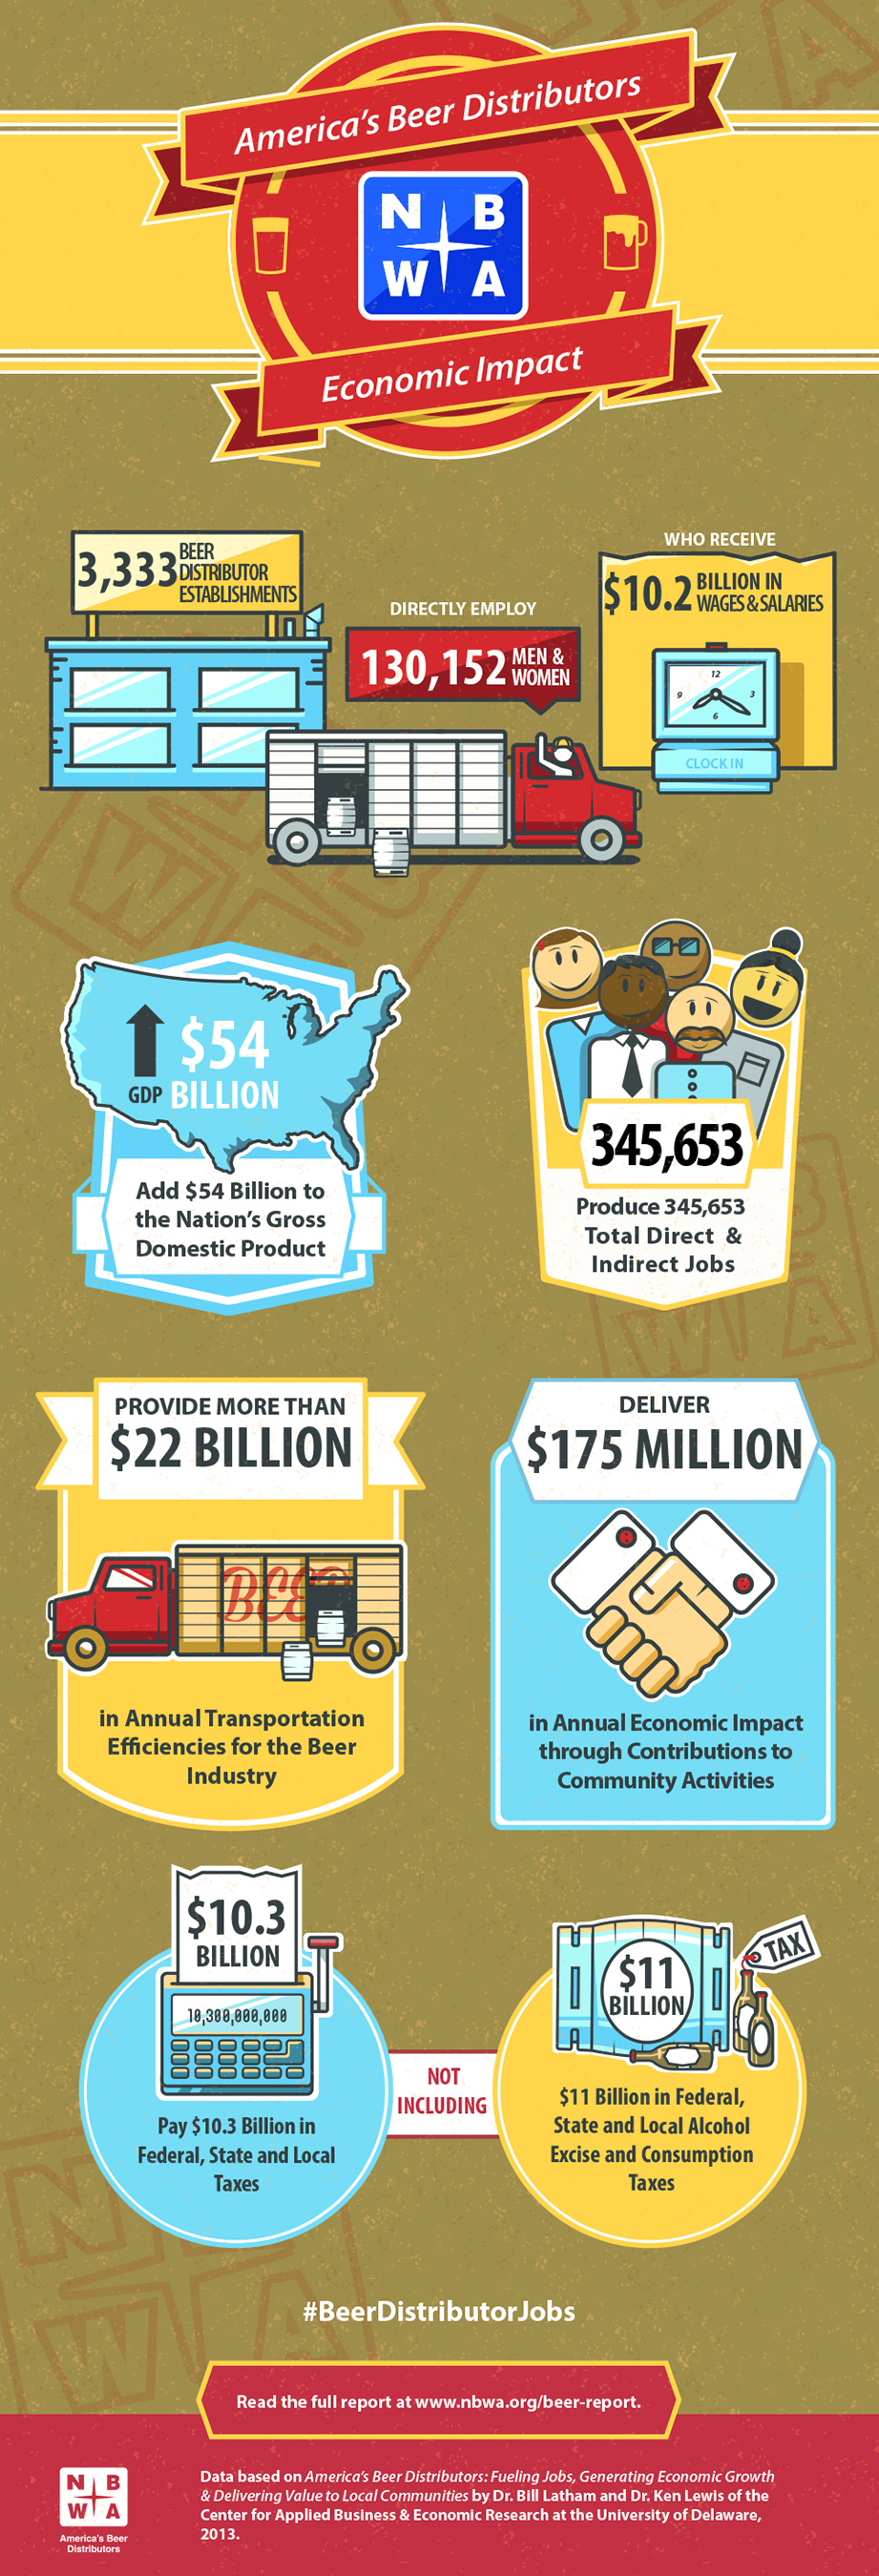 nbwa-Economic-Report-Infographic